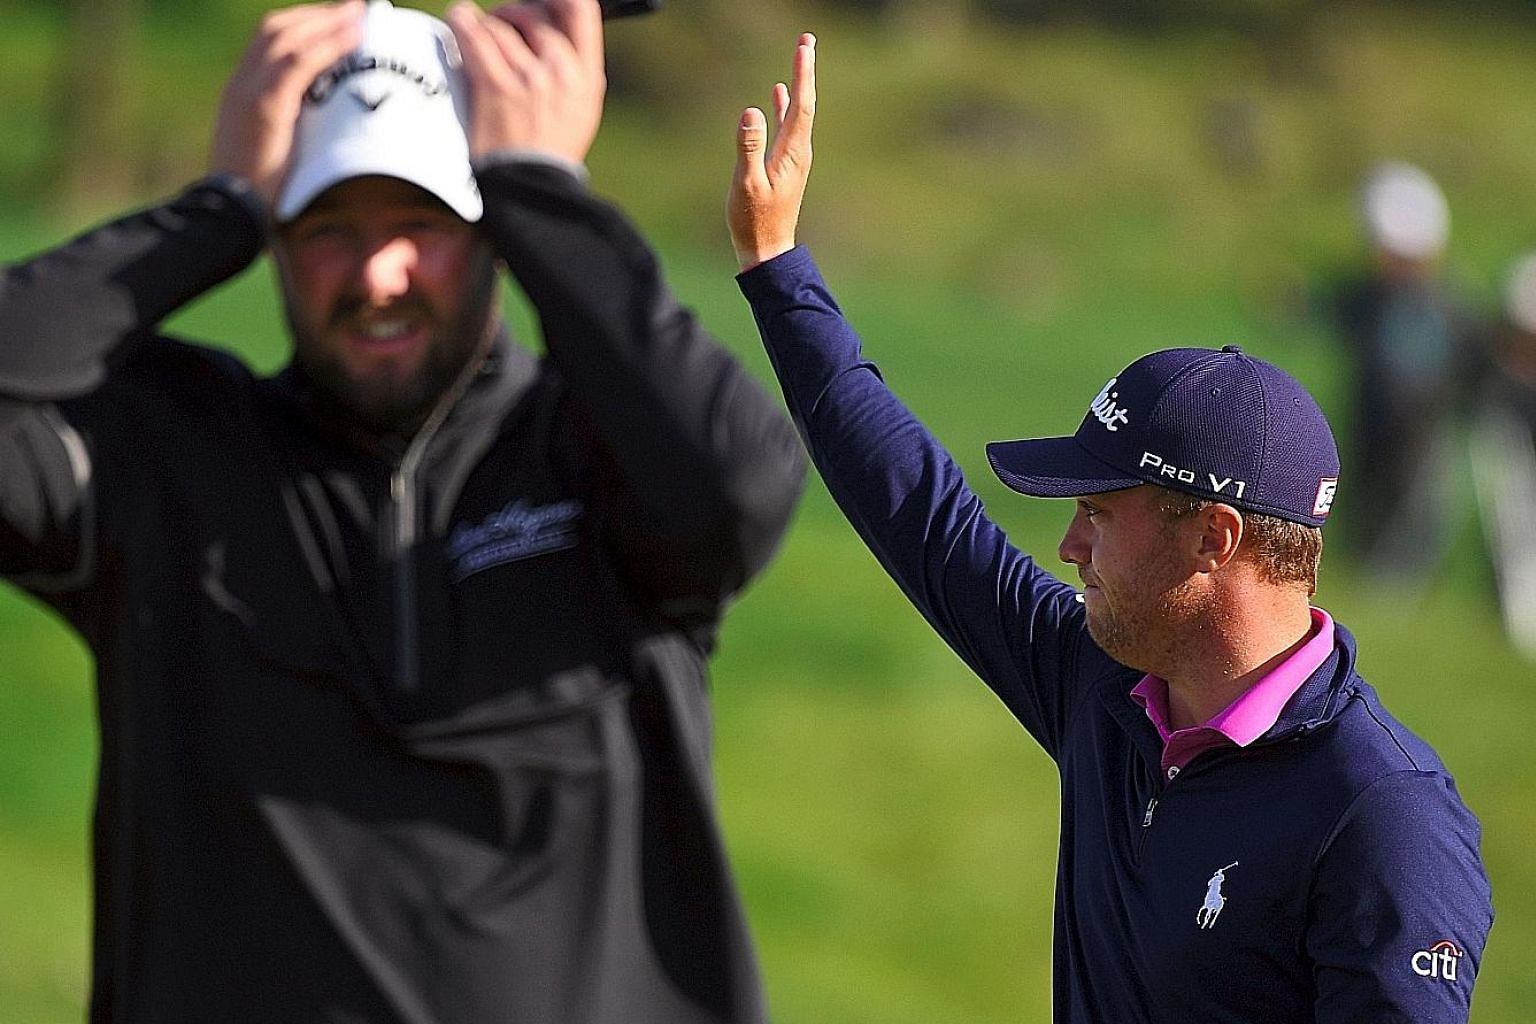 American Justin Thomas waving to celebrate his victory as Australian Marc Leishman rues his poor second shot which found water on the second play-off hole in the CJ Cup at Nine Bridges in Jeju Island.